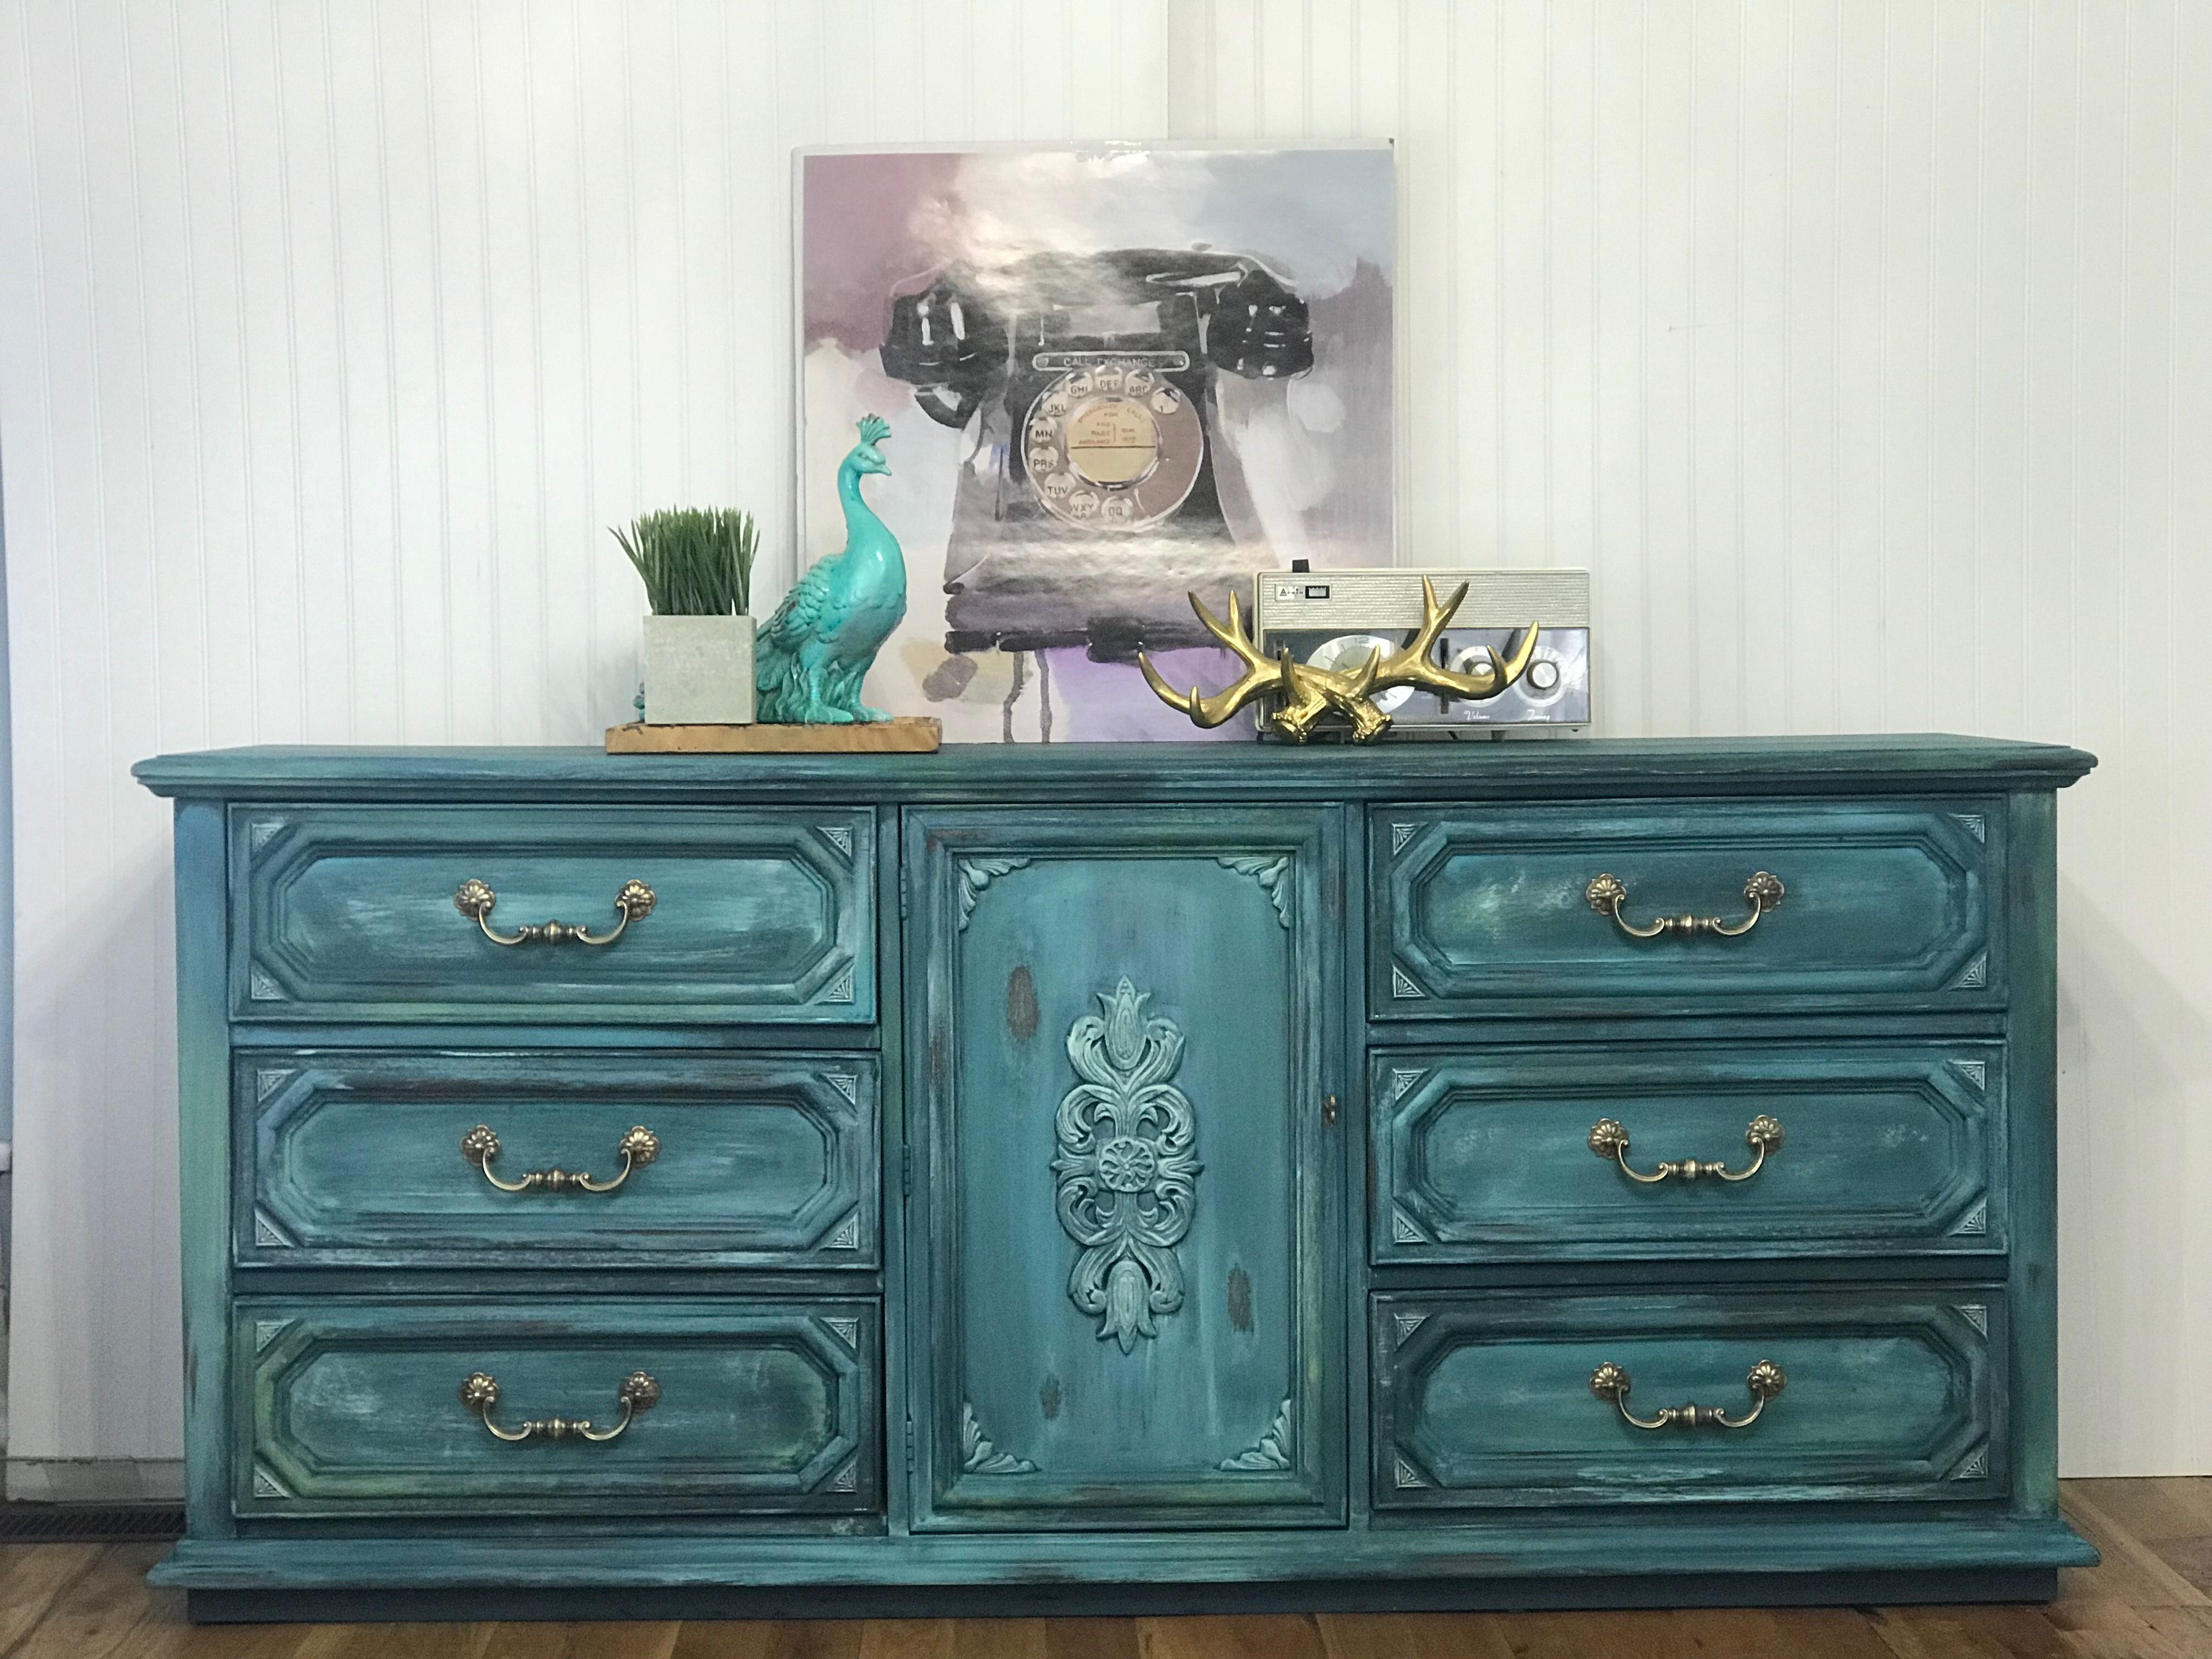 Boho Bohemian Style Dresser Painted In Diy Paints Upcycled Furniture